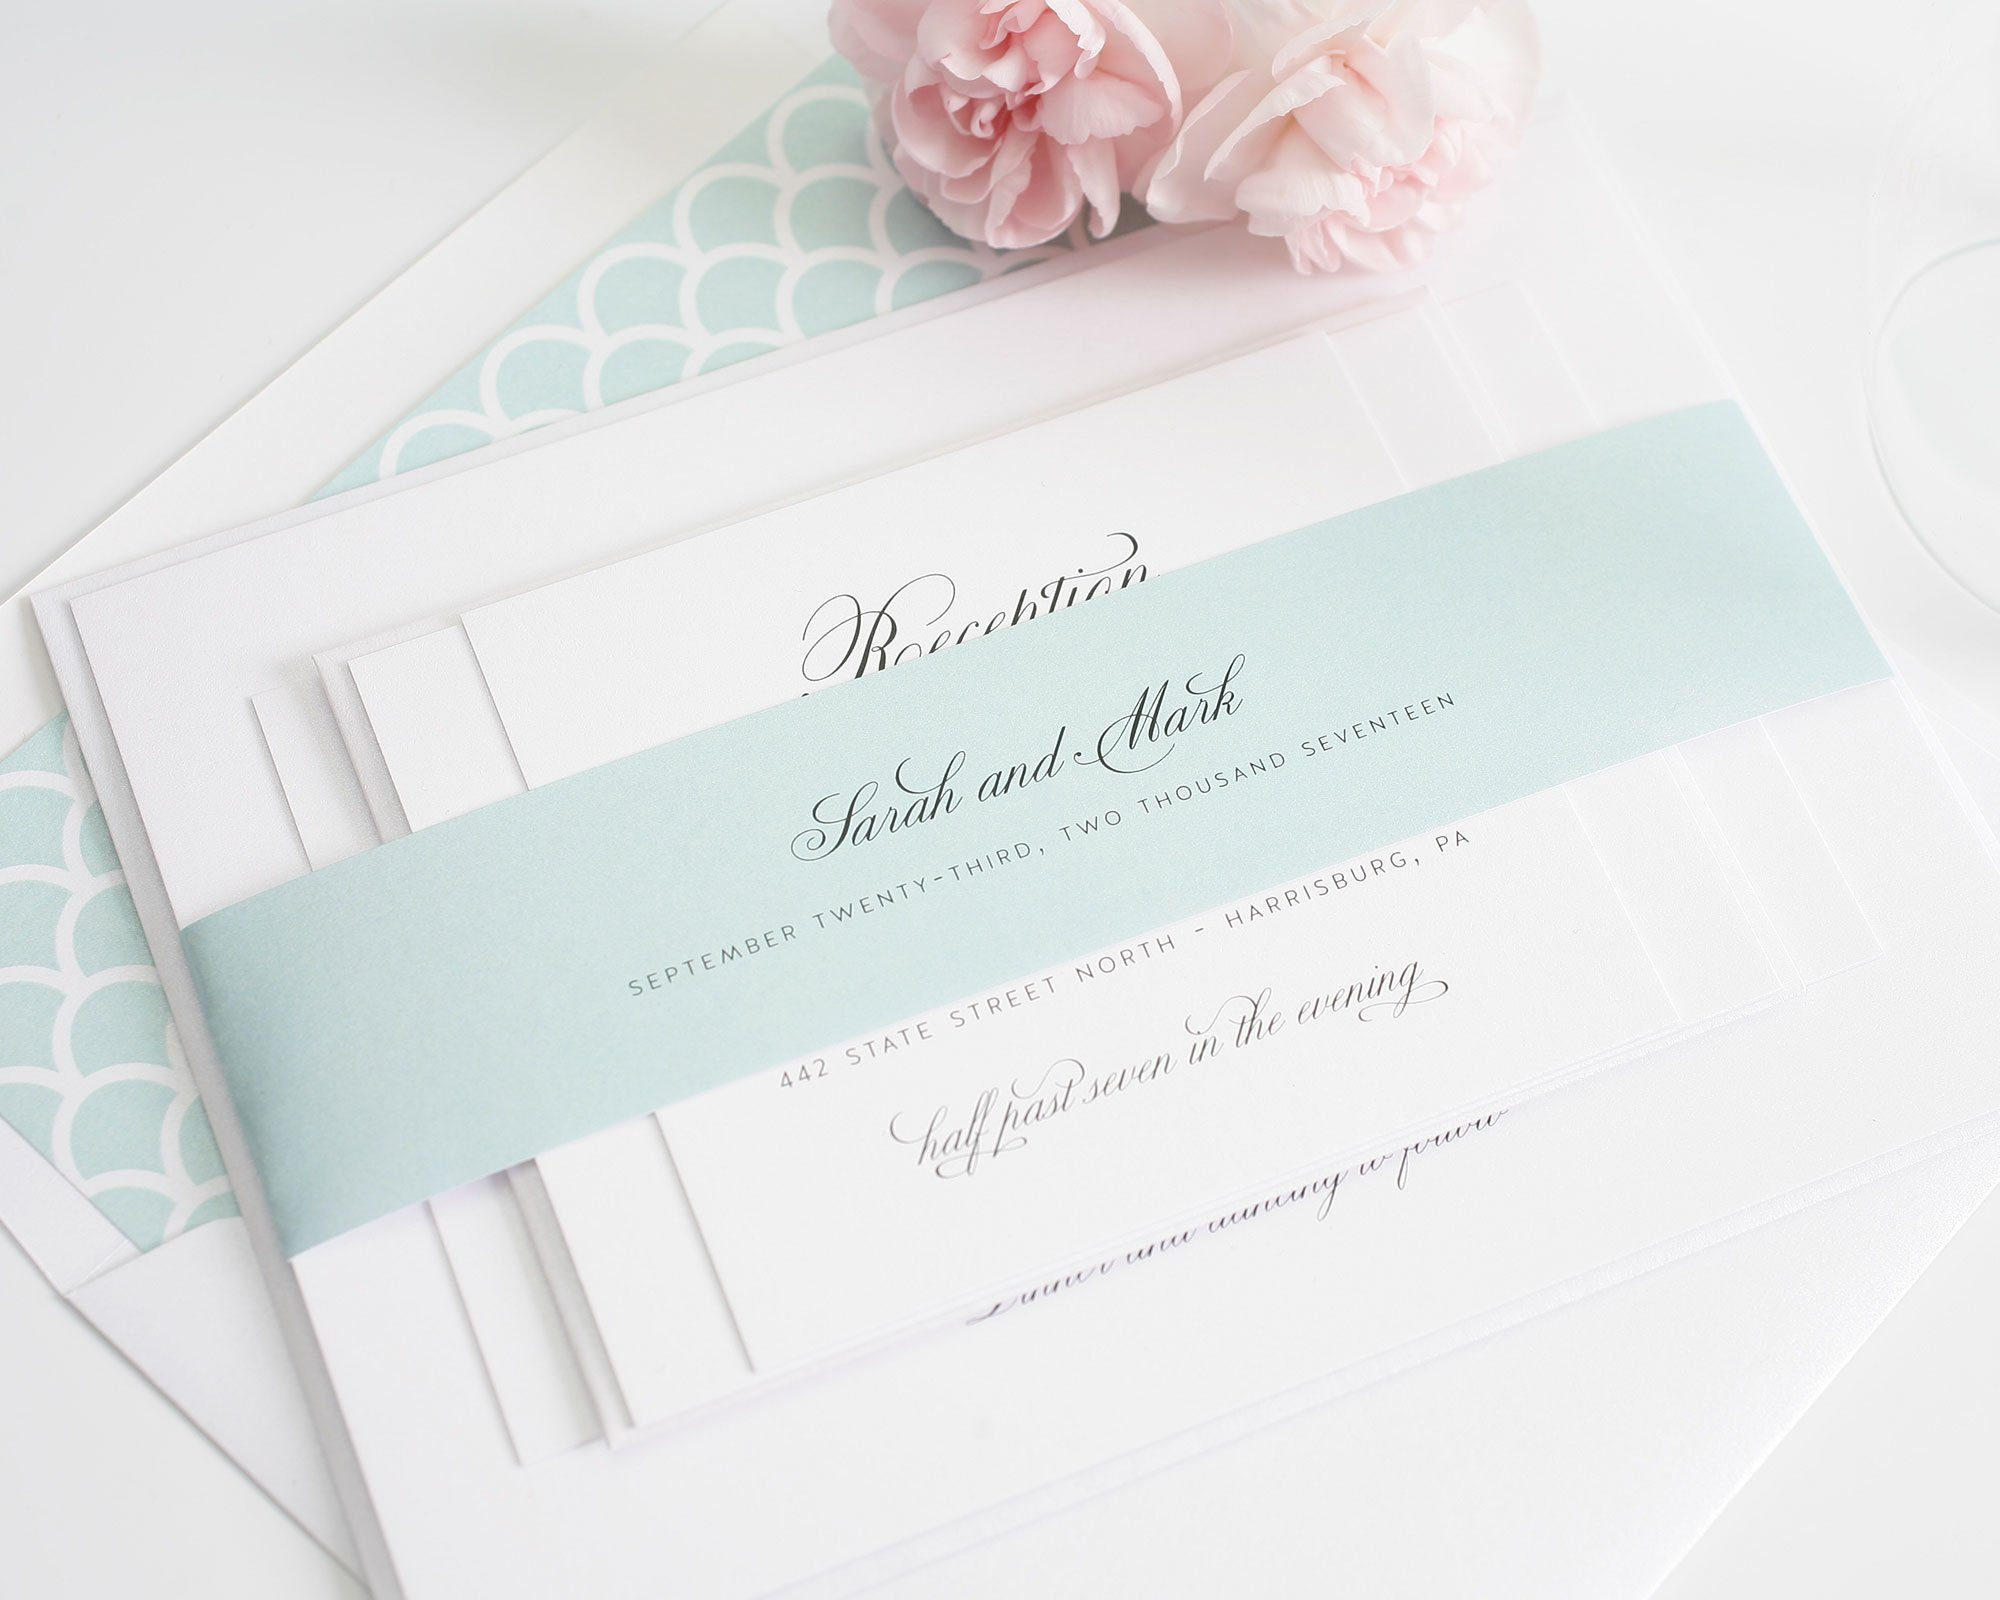 2015 Wedding Invitations – A New Collection from Shine – Wedding ...